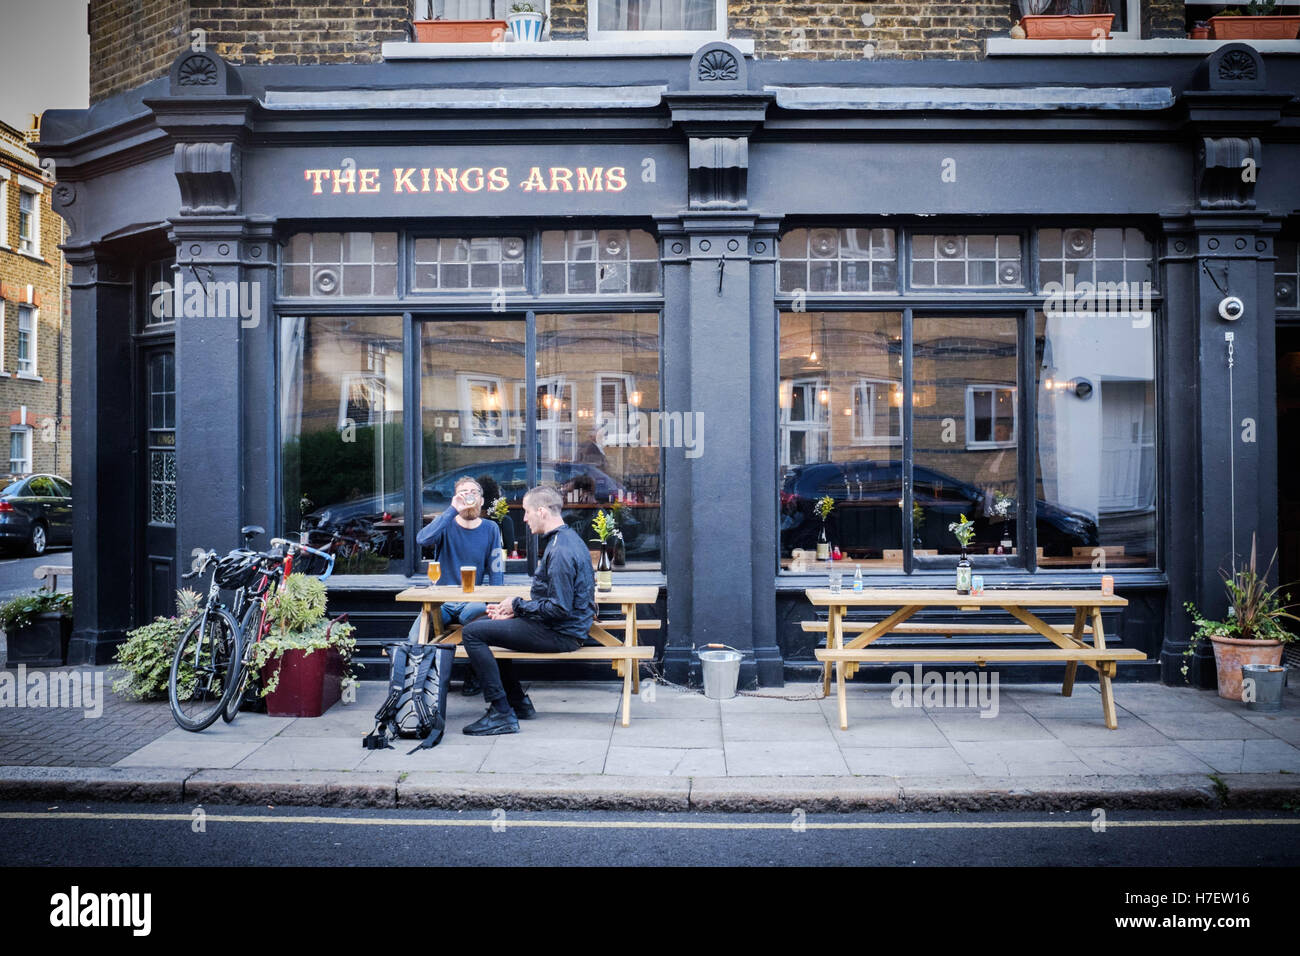 Men drinking beer outside the Kings Arms pub, Bethnal green, London - Stock Image